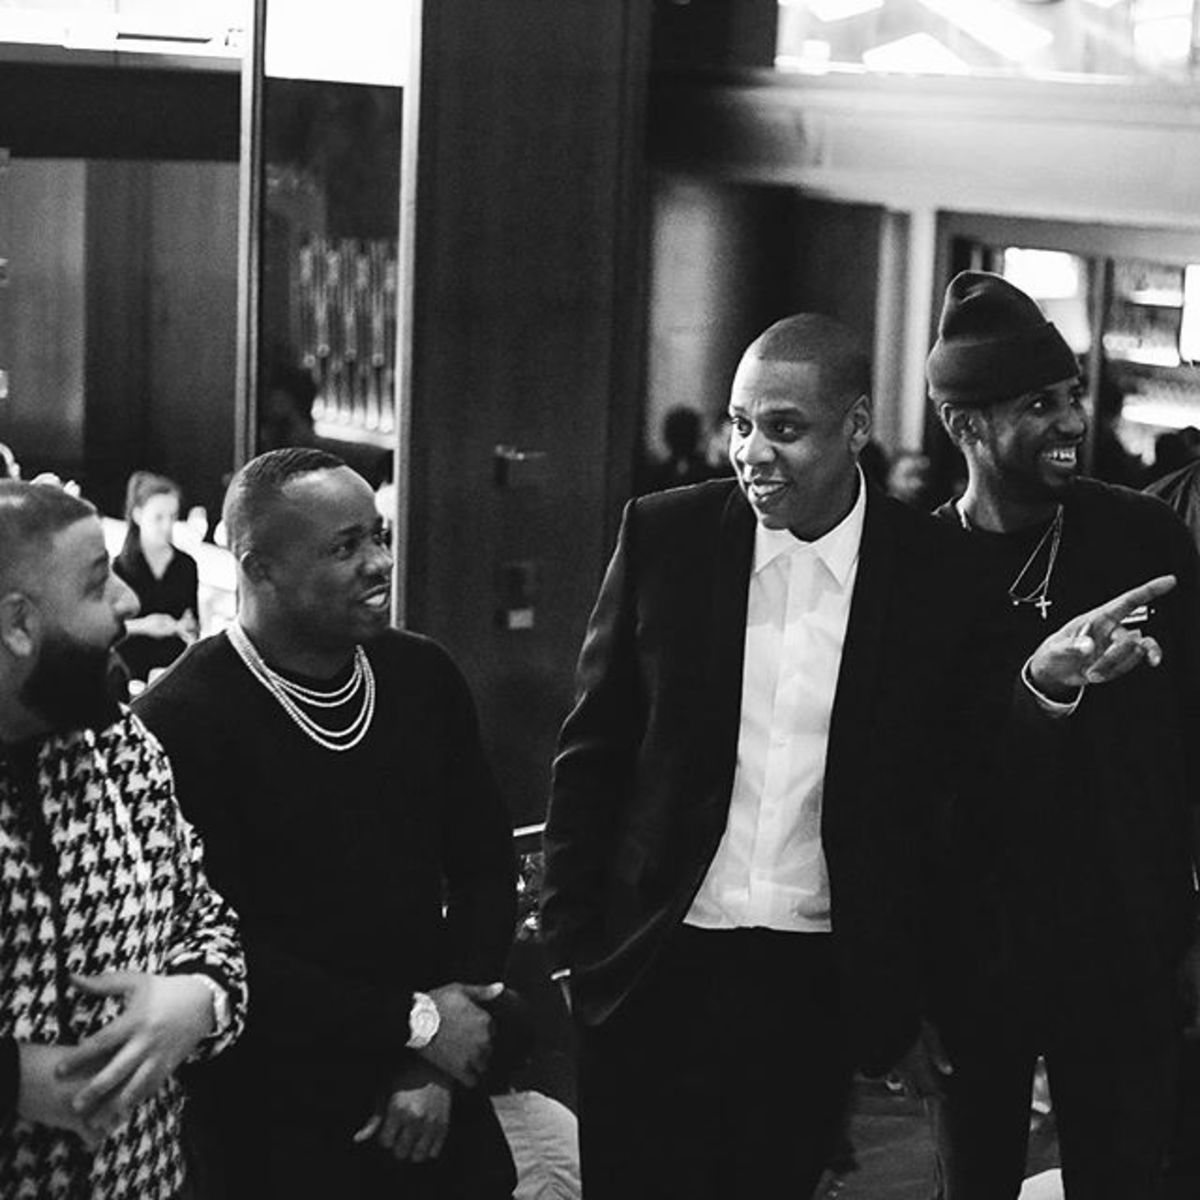 Left to Right: DJ Khaled, Yo Gotti, Jay Z and Fabolous